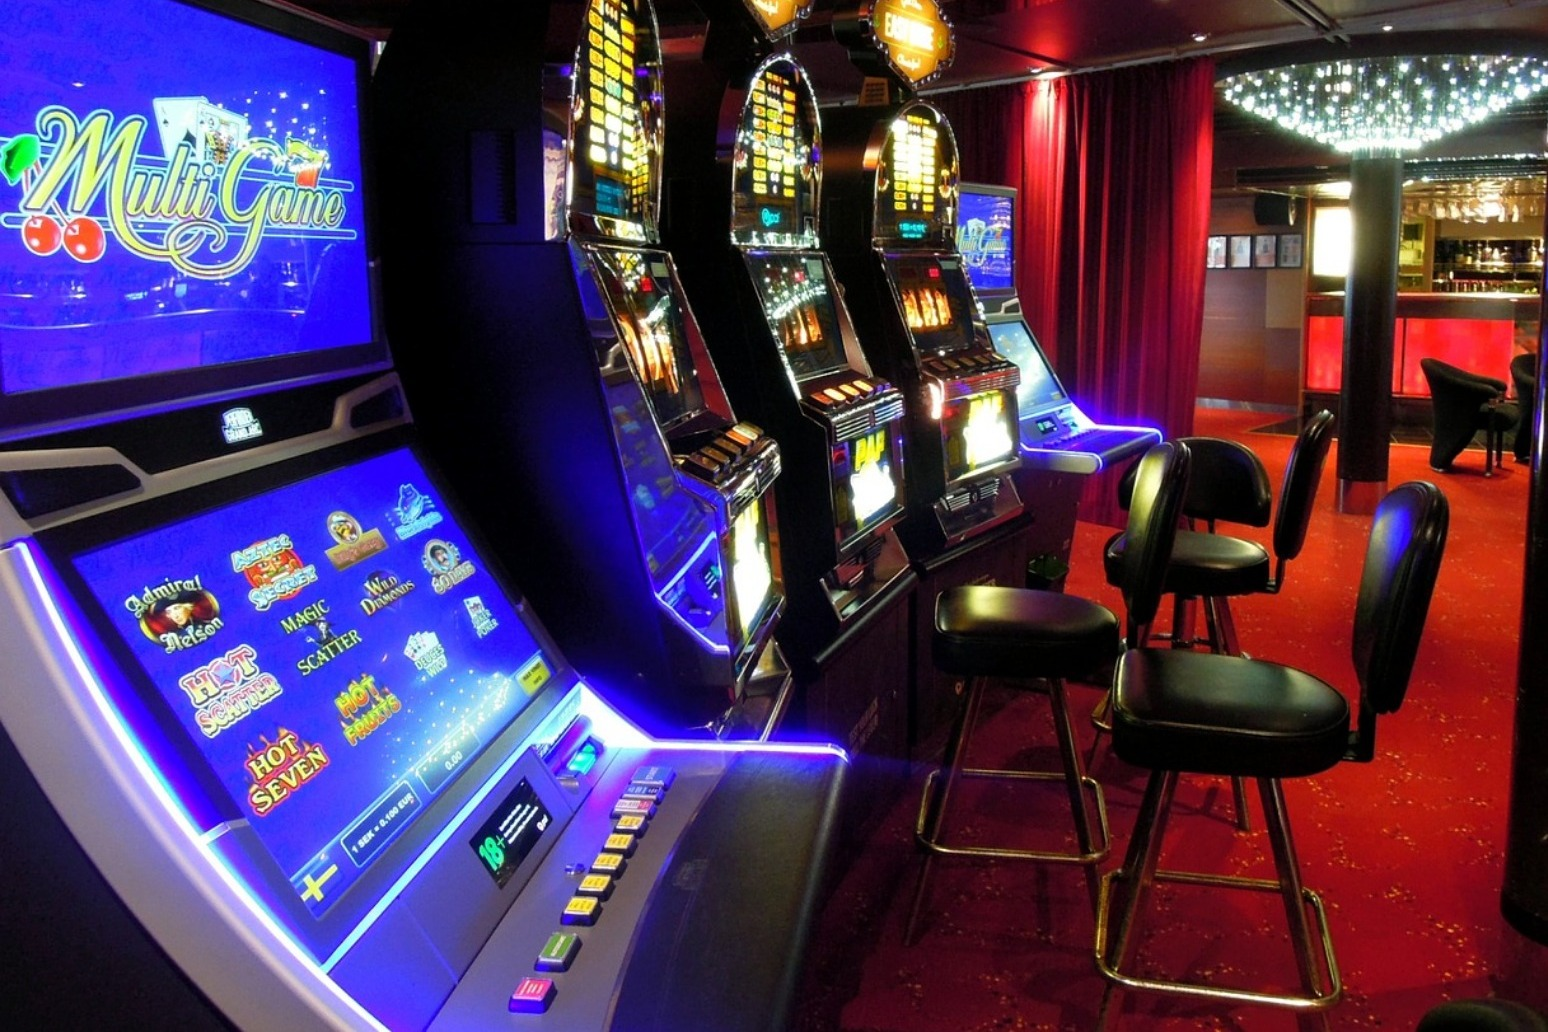 Top stake on gambling machines to be cut to £2